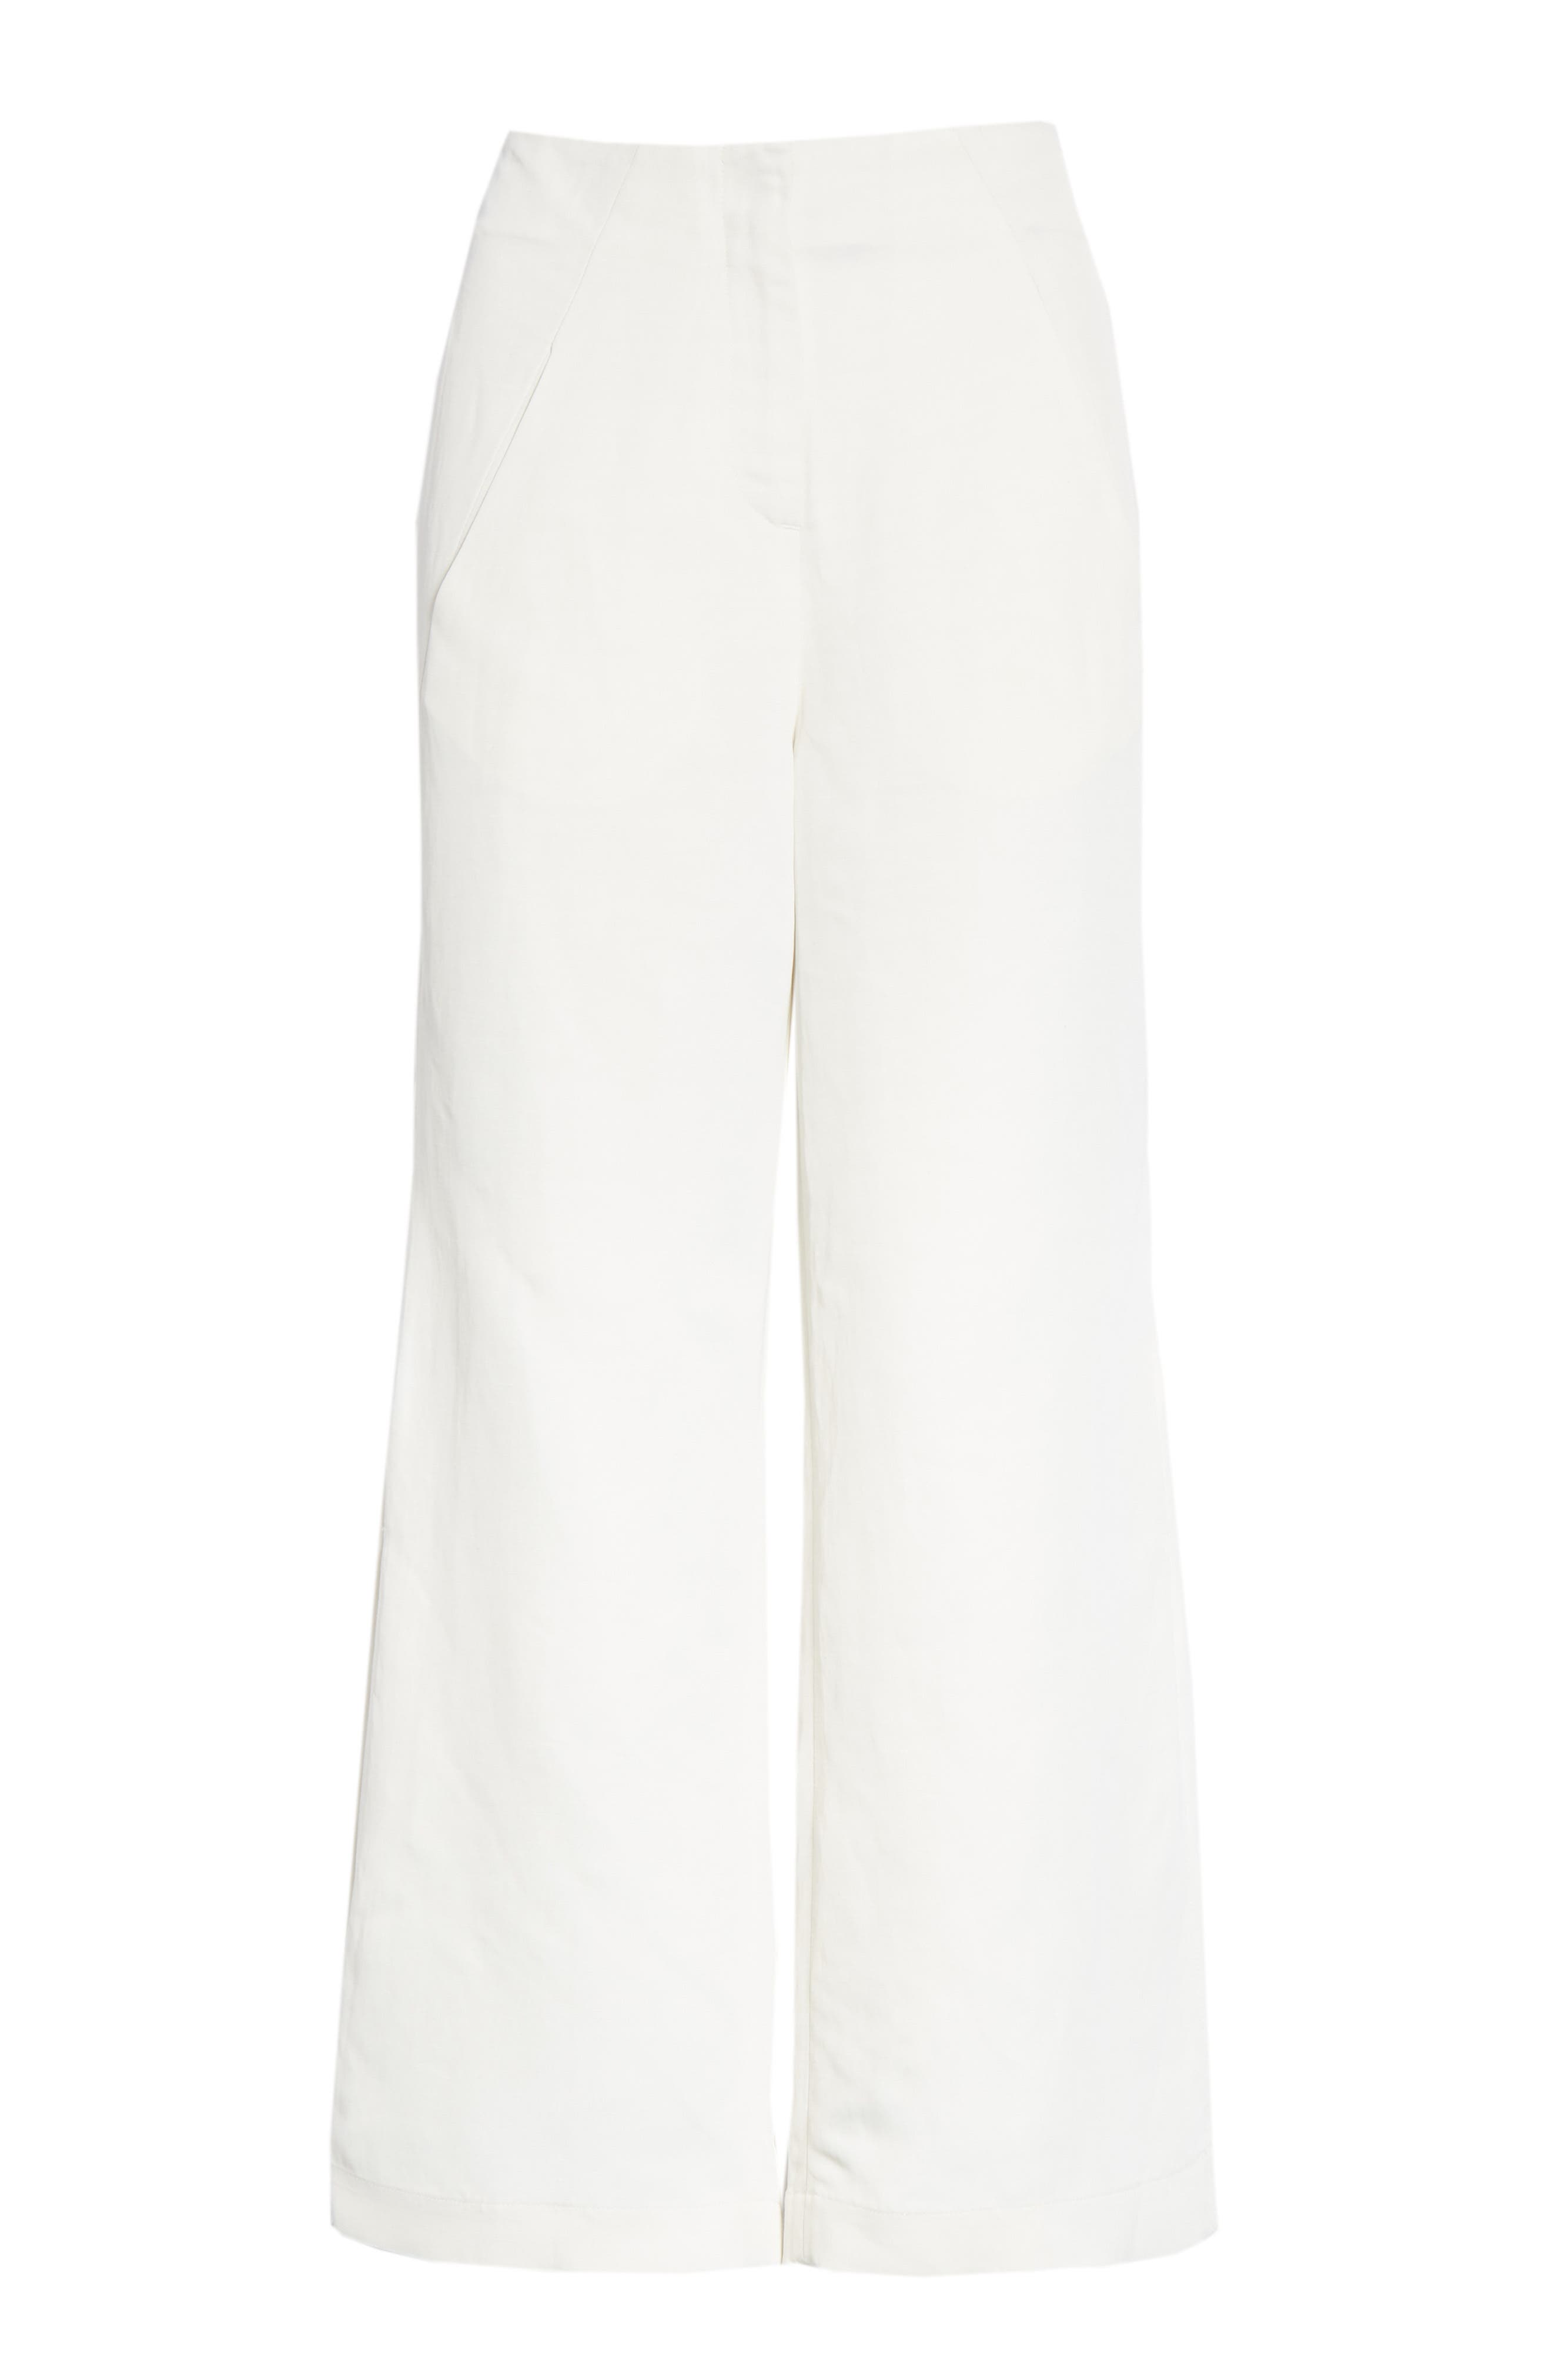 Tin Side Slit Crop Pants,                             Alternate thumbnail 6, color,                             WHITE PEPPER